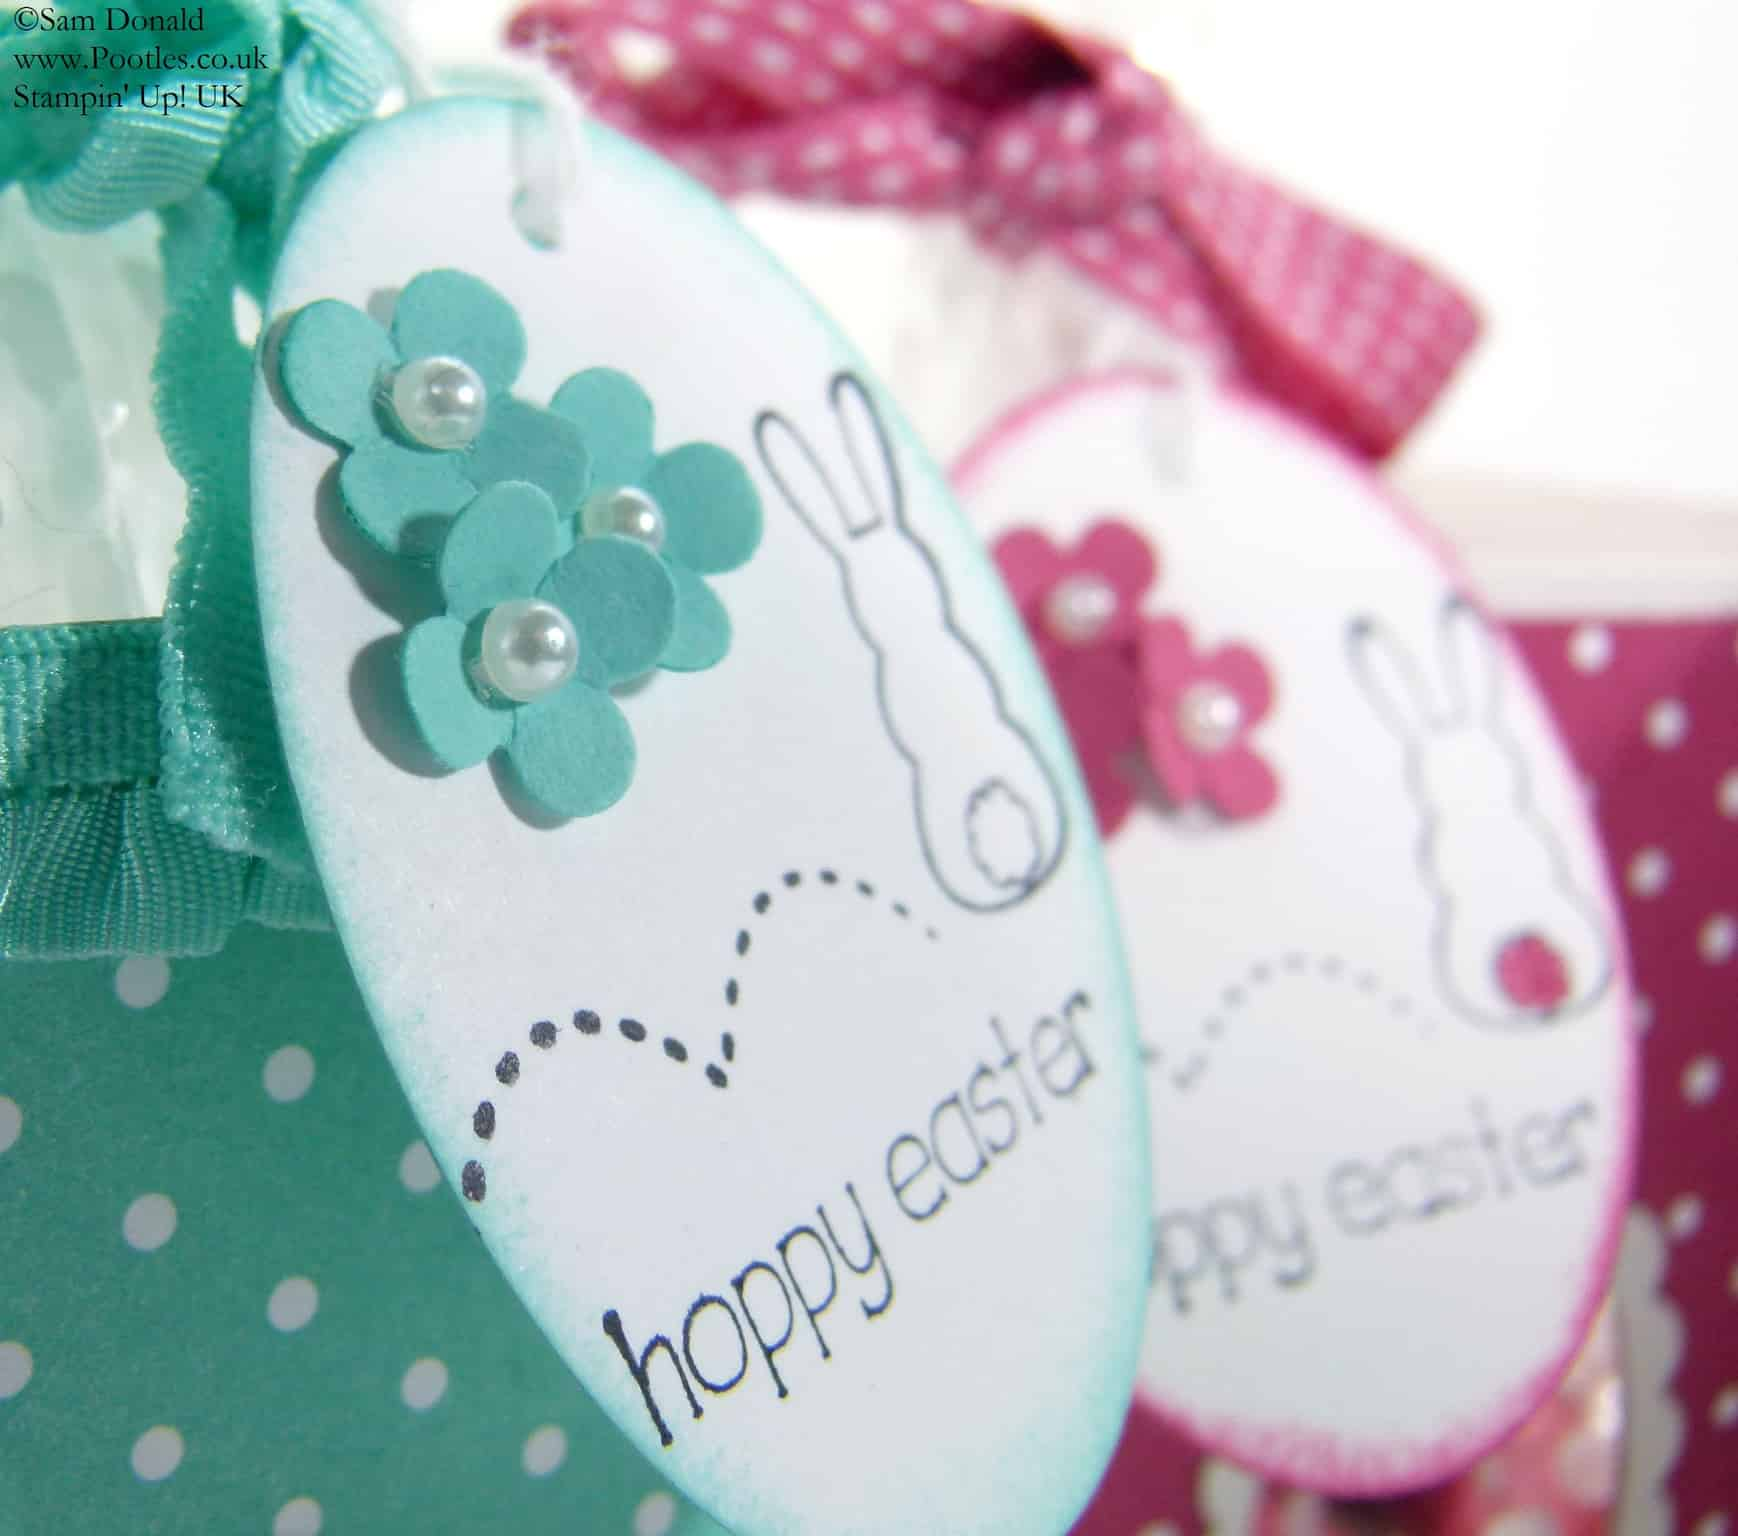 POOTLES Stampin' Up! UK Easter Window Treat Boxes 2